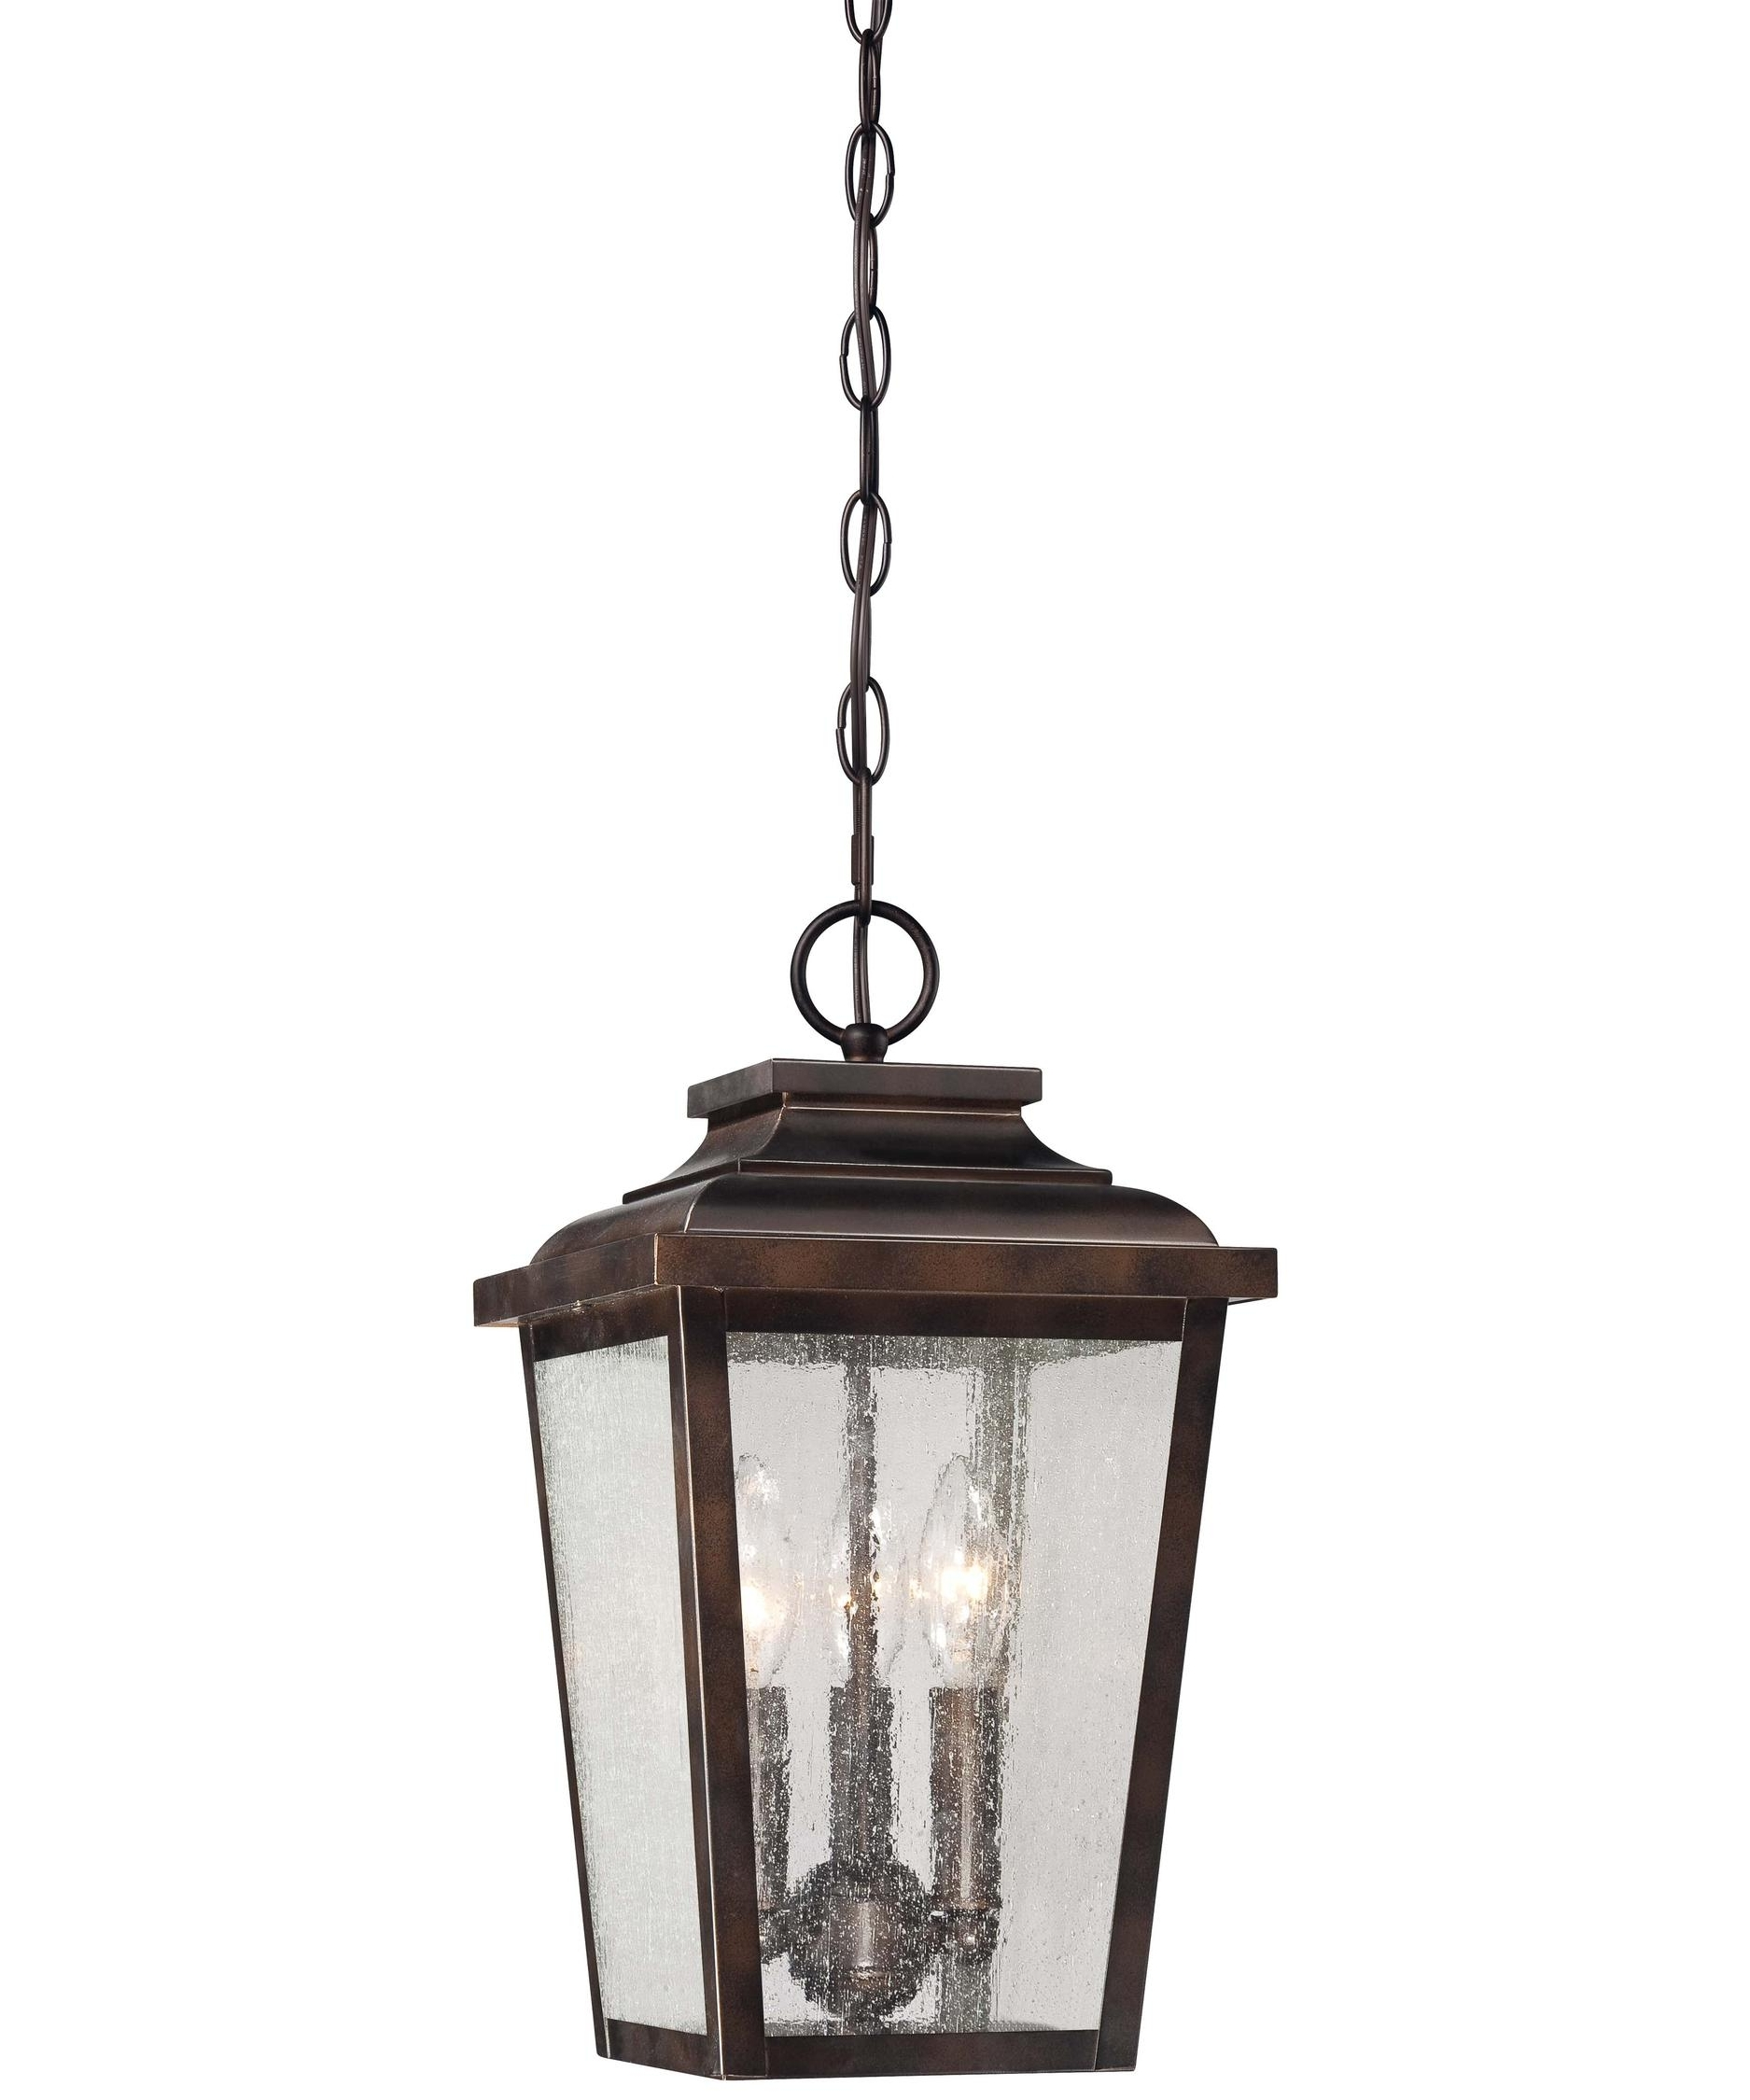 Antique Outdoor Hanging Lights Inside Most Current Decorating : Antique Moroccan Ceiling Lamps Design For Beautiful (View 5 of 20)